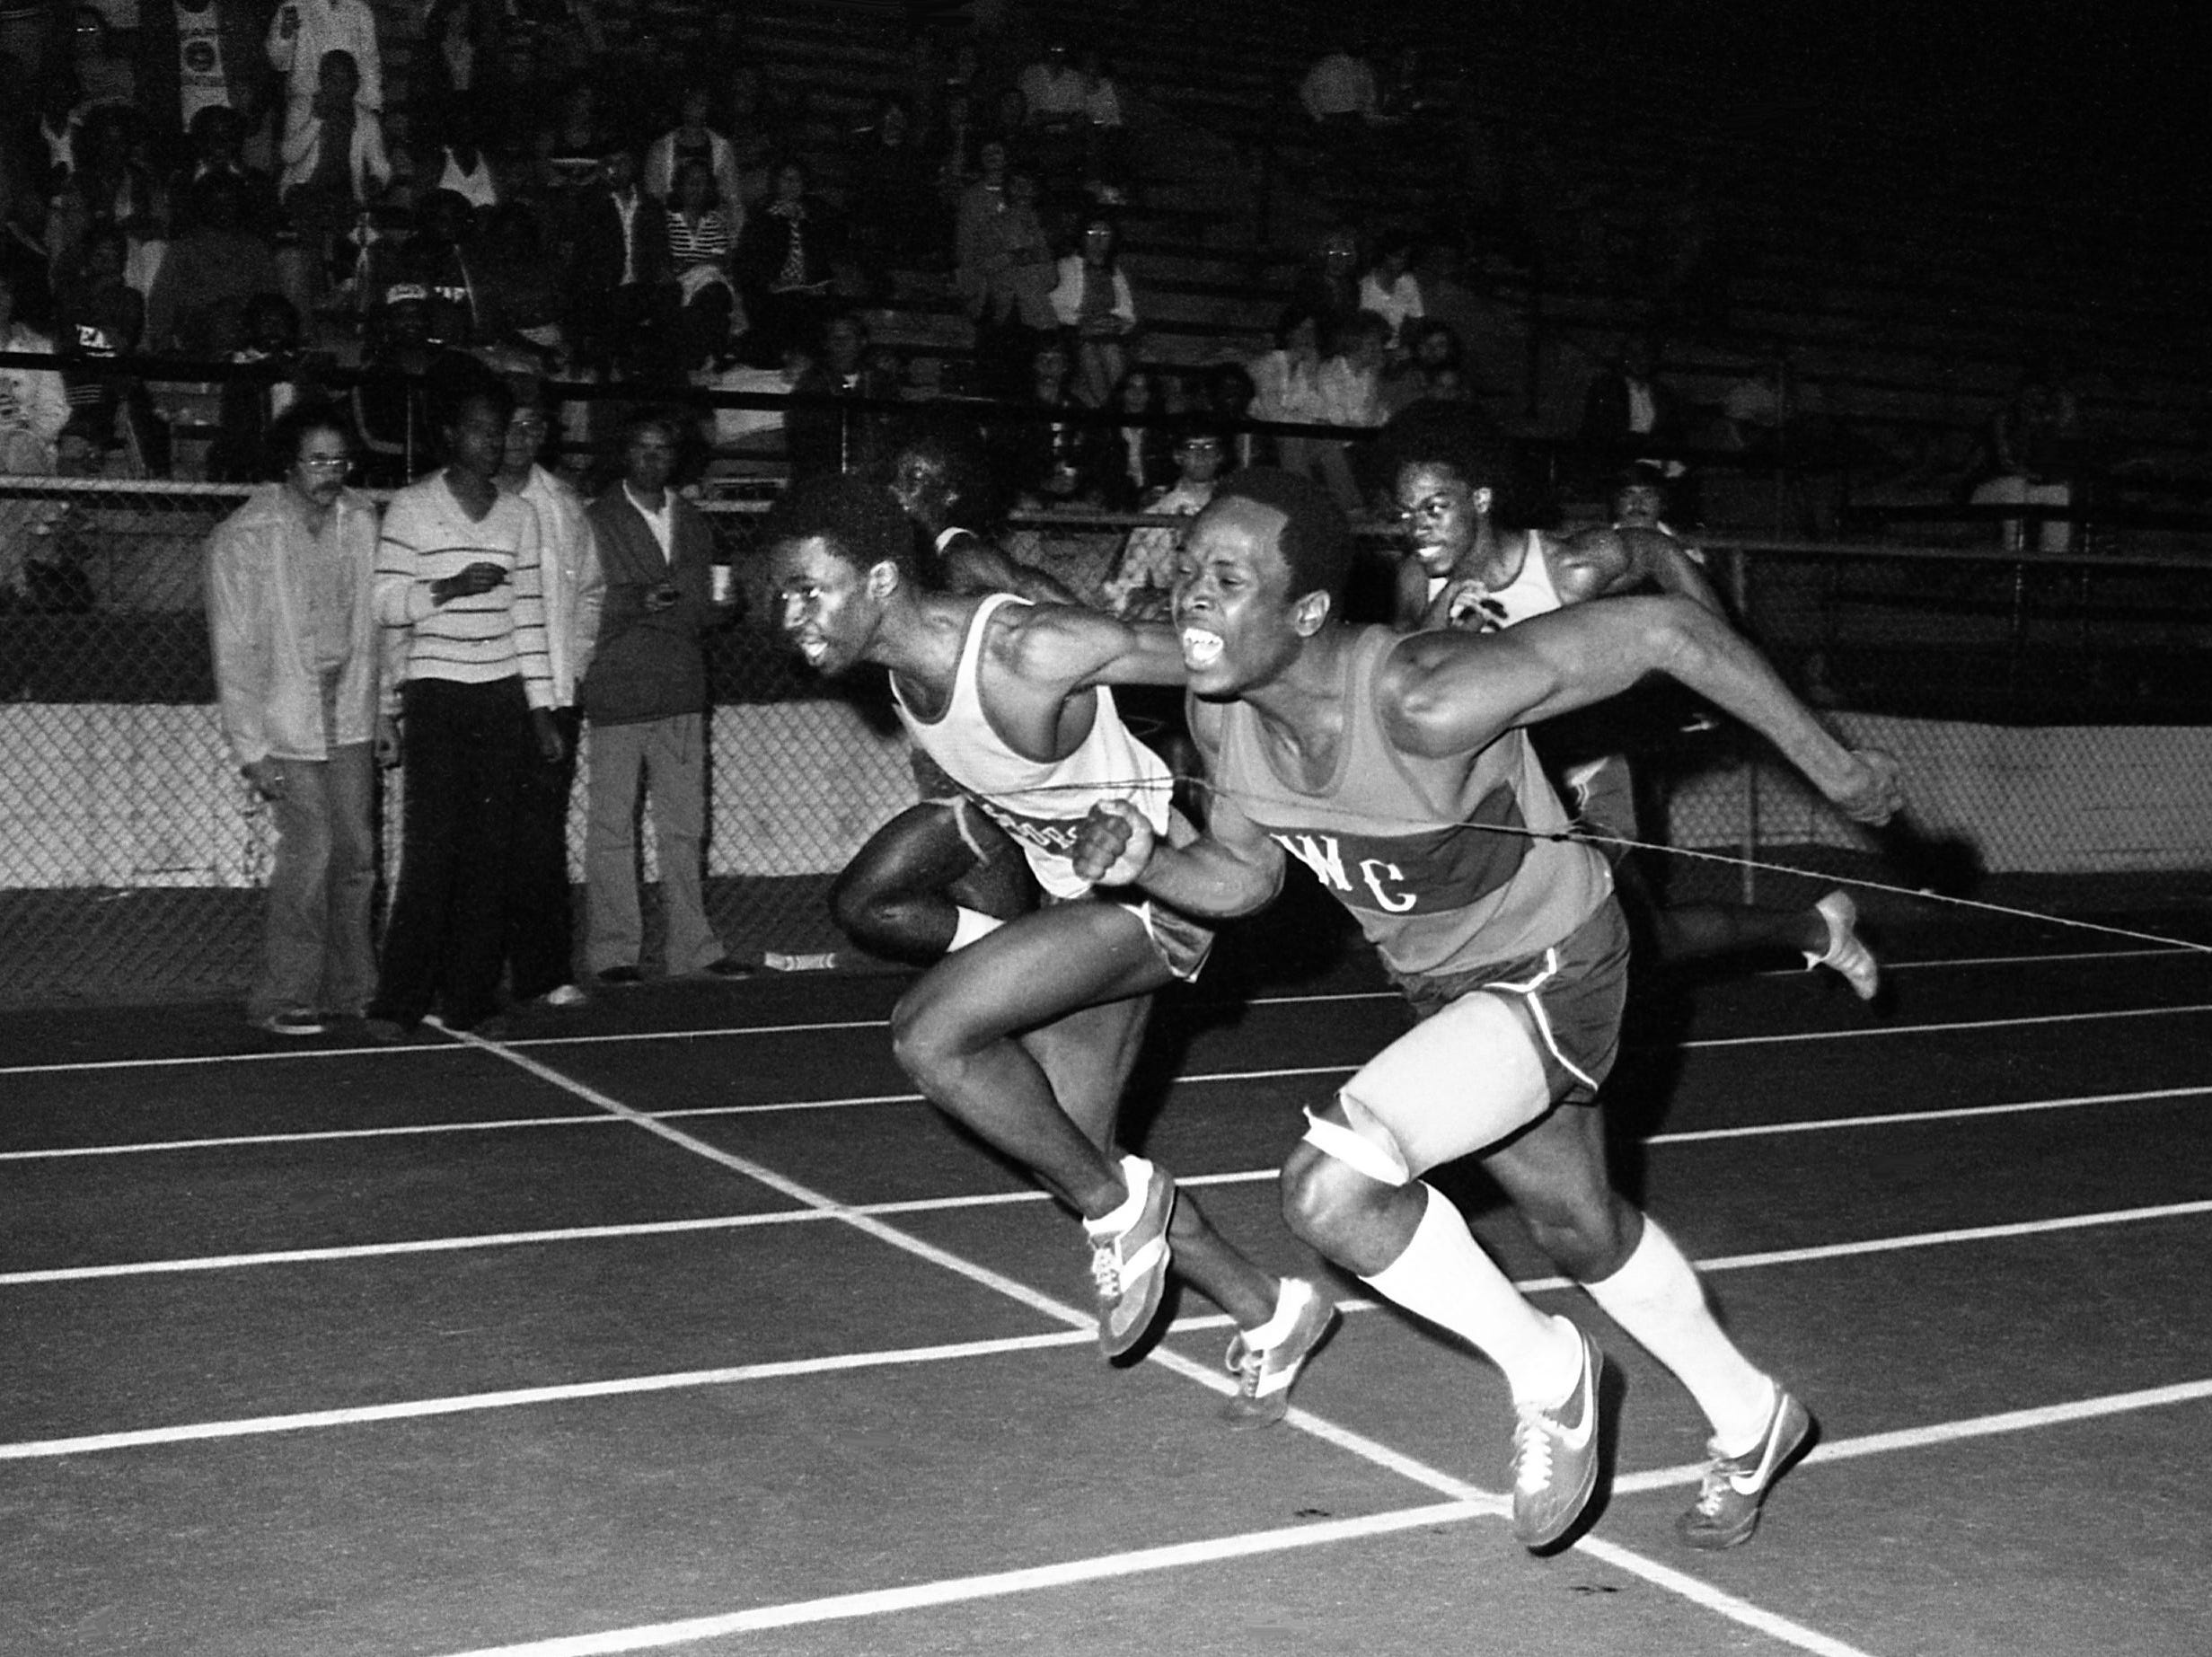 Mickey Avery, right, of Whites Creek High and Jerome Wilson of Hillsboro High stretch the wire at the finishes of the 110-yard high hurdles during the Optimist Relays at Overton High School on April 21, 1979. Avery was declared the winner over Wilson.